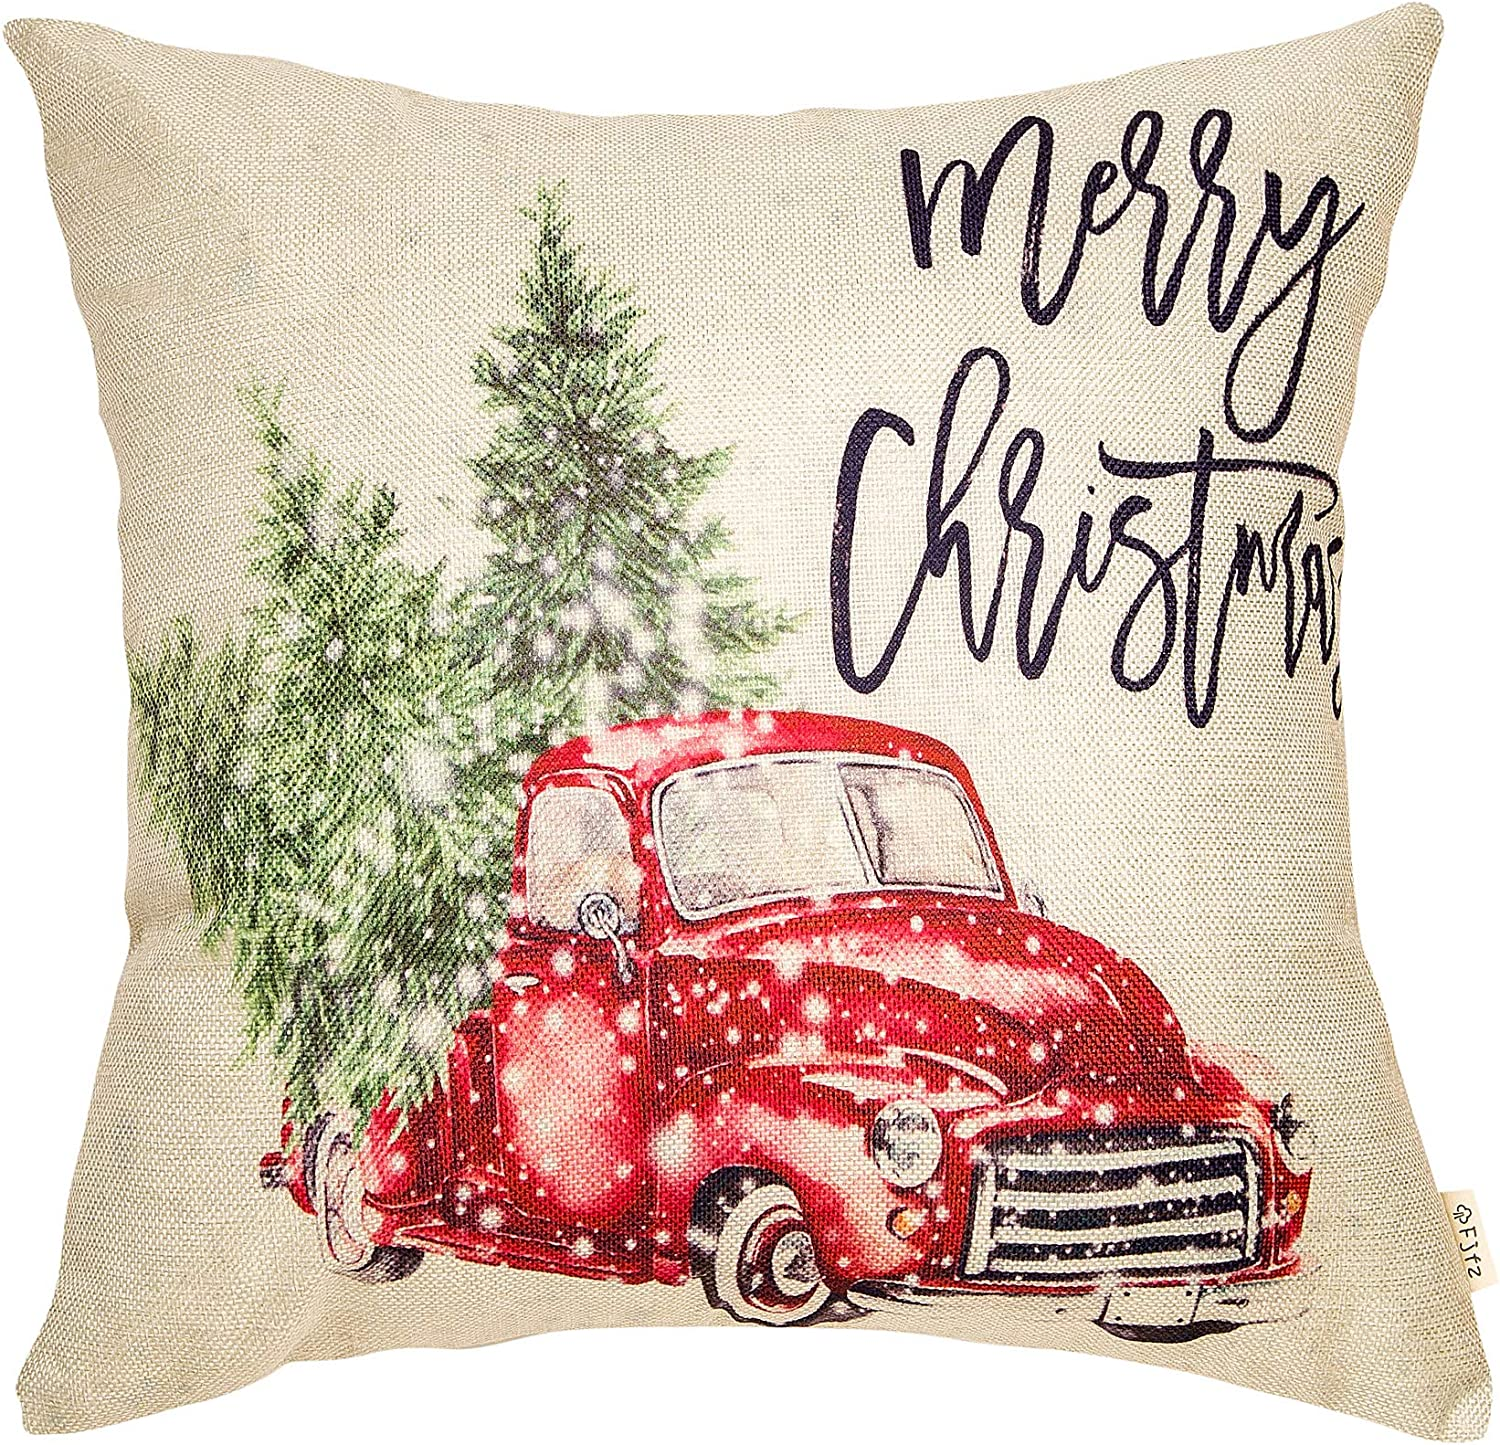 "Fjfz Merry Christmas Decor Retro Red Truck with Trees Snowflakes Winter Holiday Sign Farmhouse Decoration Gift Cotton Linen Home Decorative Throw Pillow Case Cushion Cover for Sofa Couch 18"" x 18"""